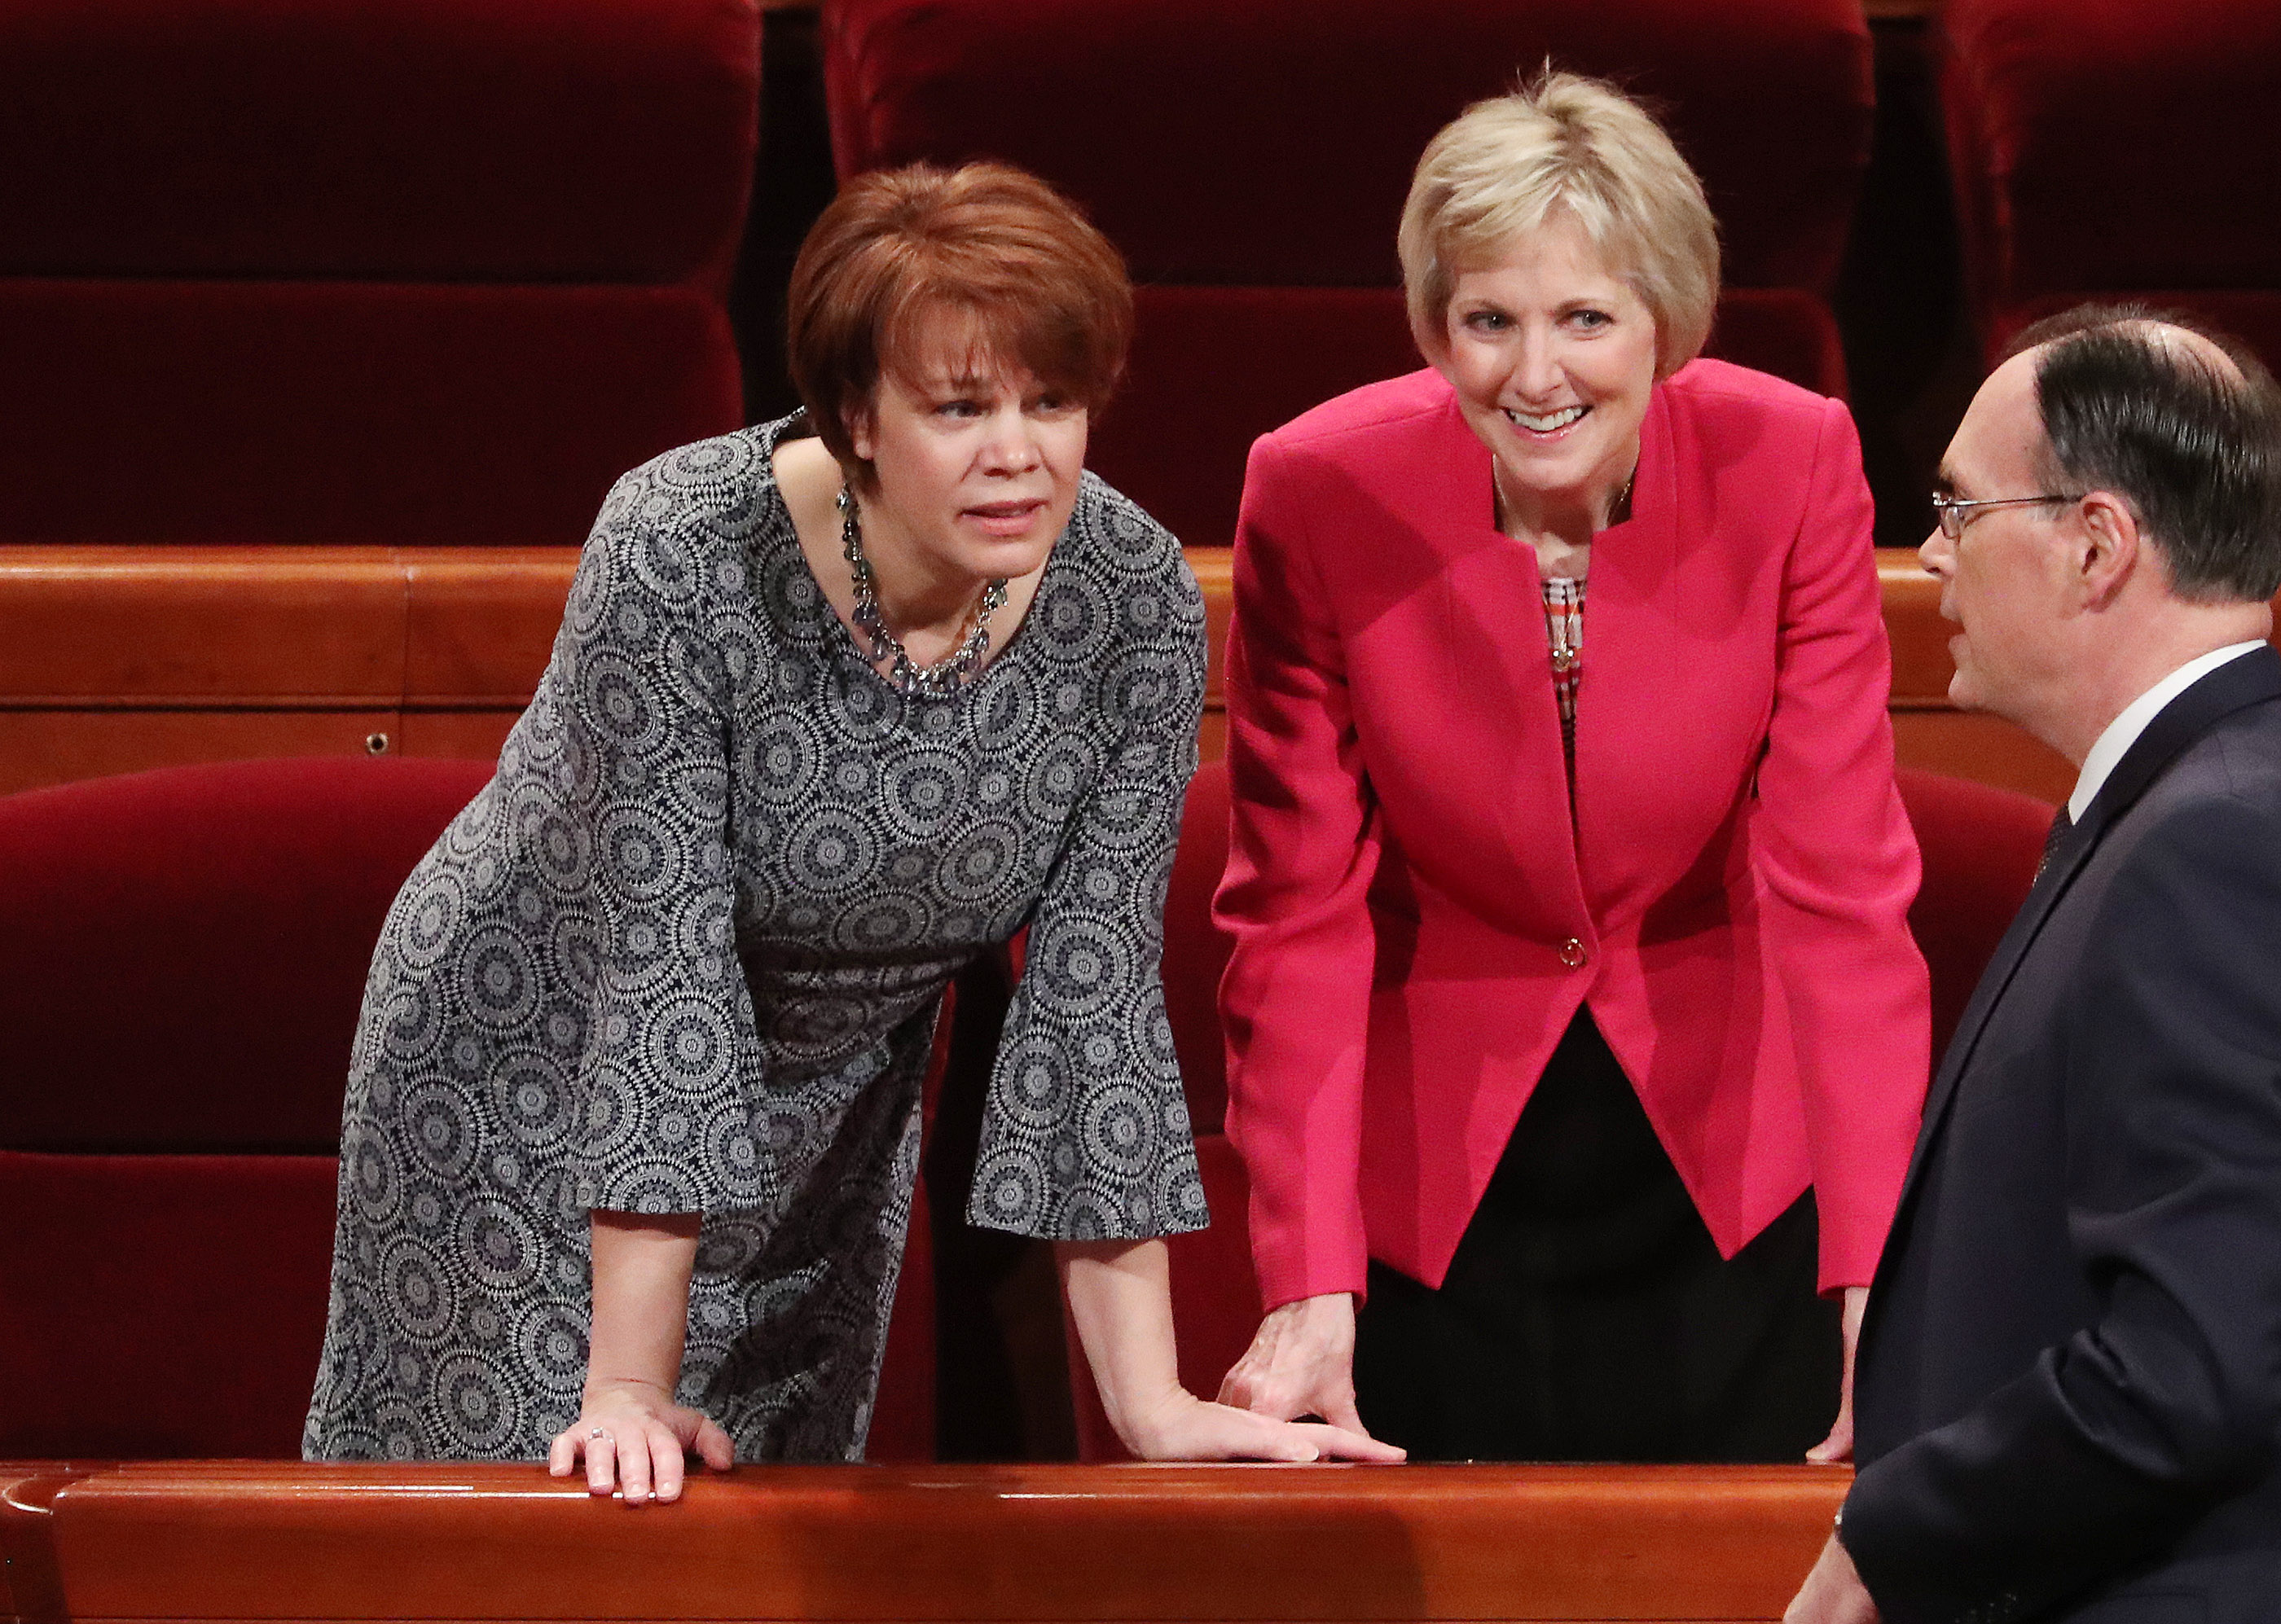 Sister Sharon Eubank, first counselor in the Relief Society general presidency, and Sister Jean Bingham, general president of the Relief Society, talk prior to the 189th Annual General Conference of The Church of Jesus Christ of Latter-day Saints in Salt Lake City on Saturday, April 6, 2019.